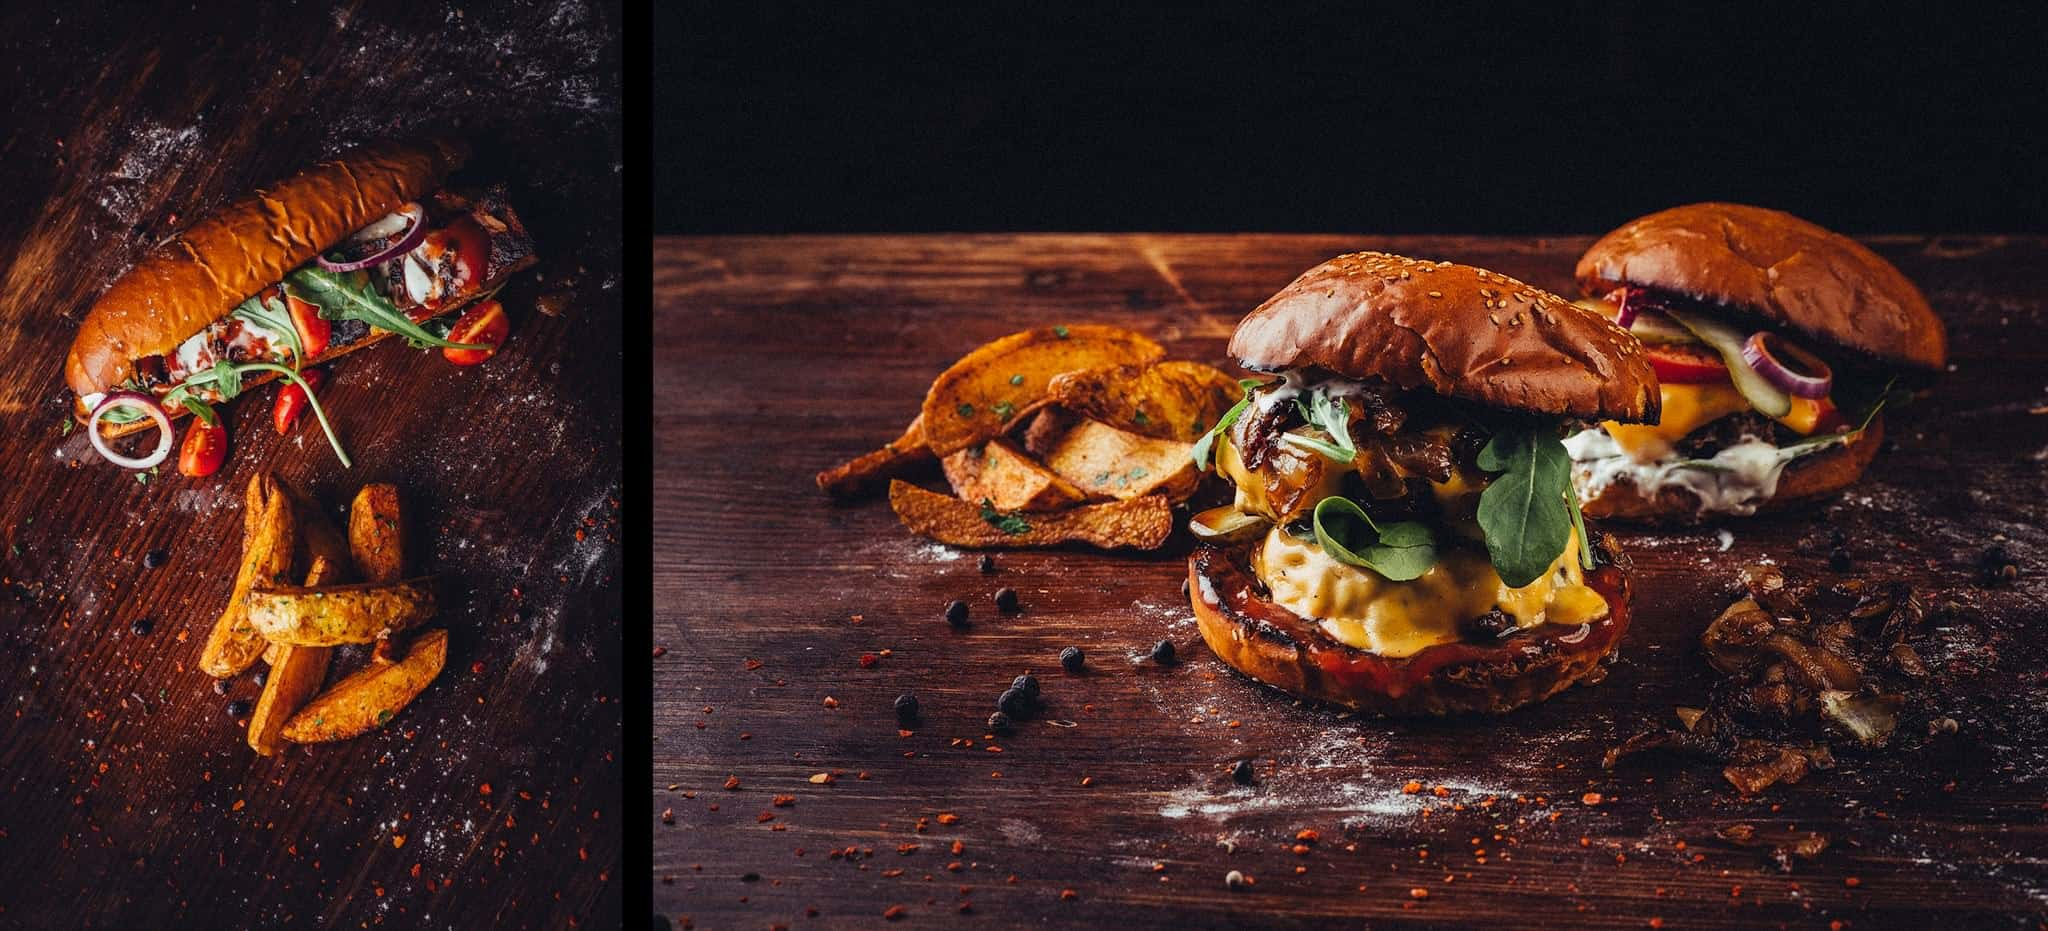 Food Photography - 20 delicious images that make your mouth start salivating